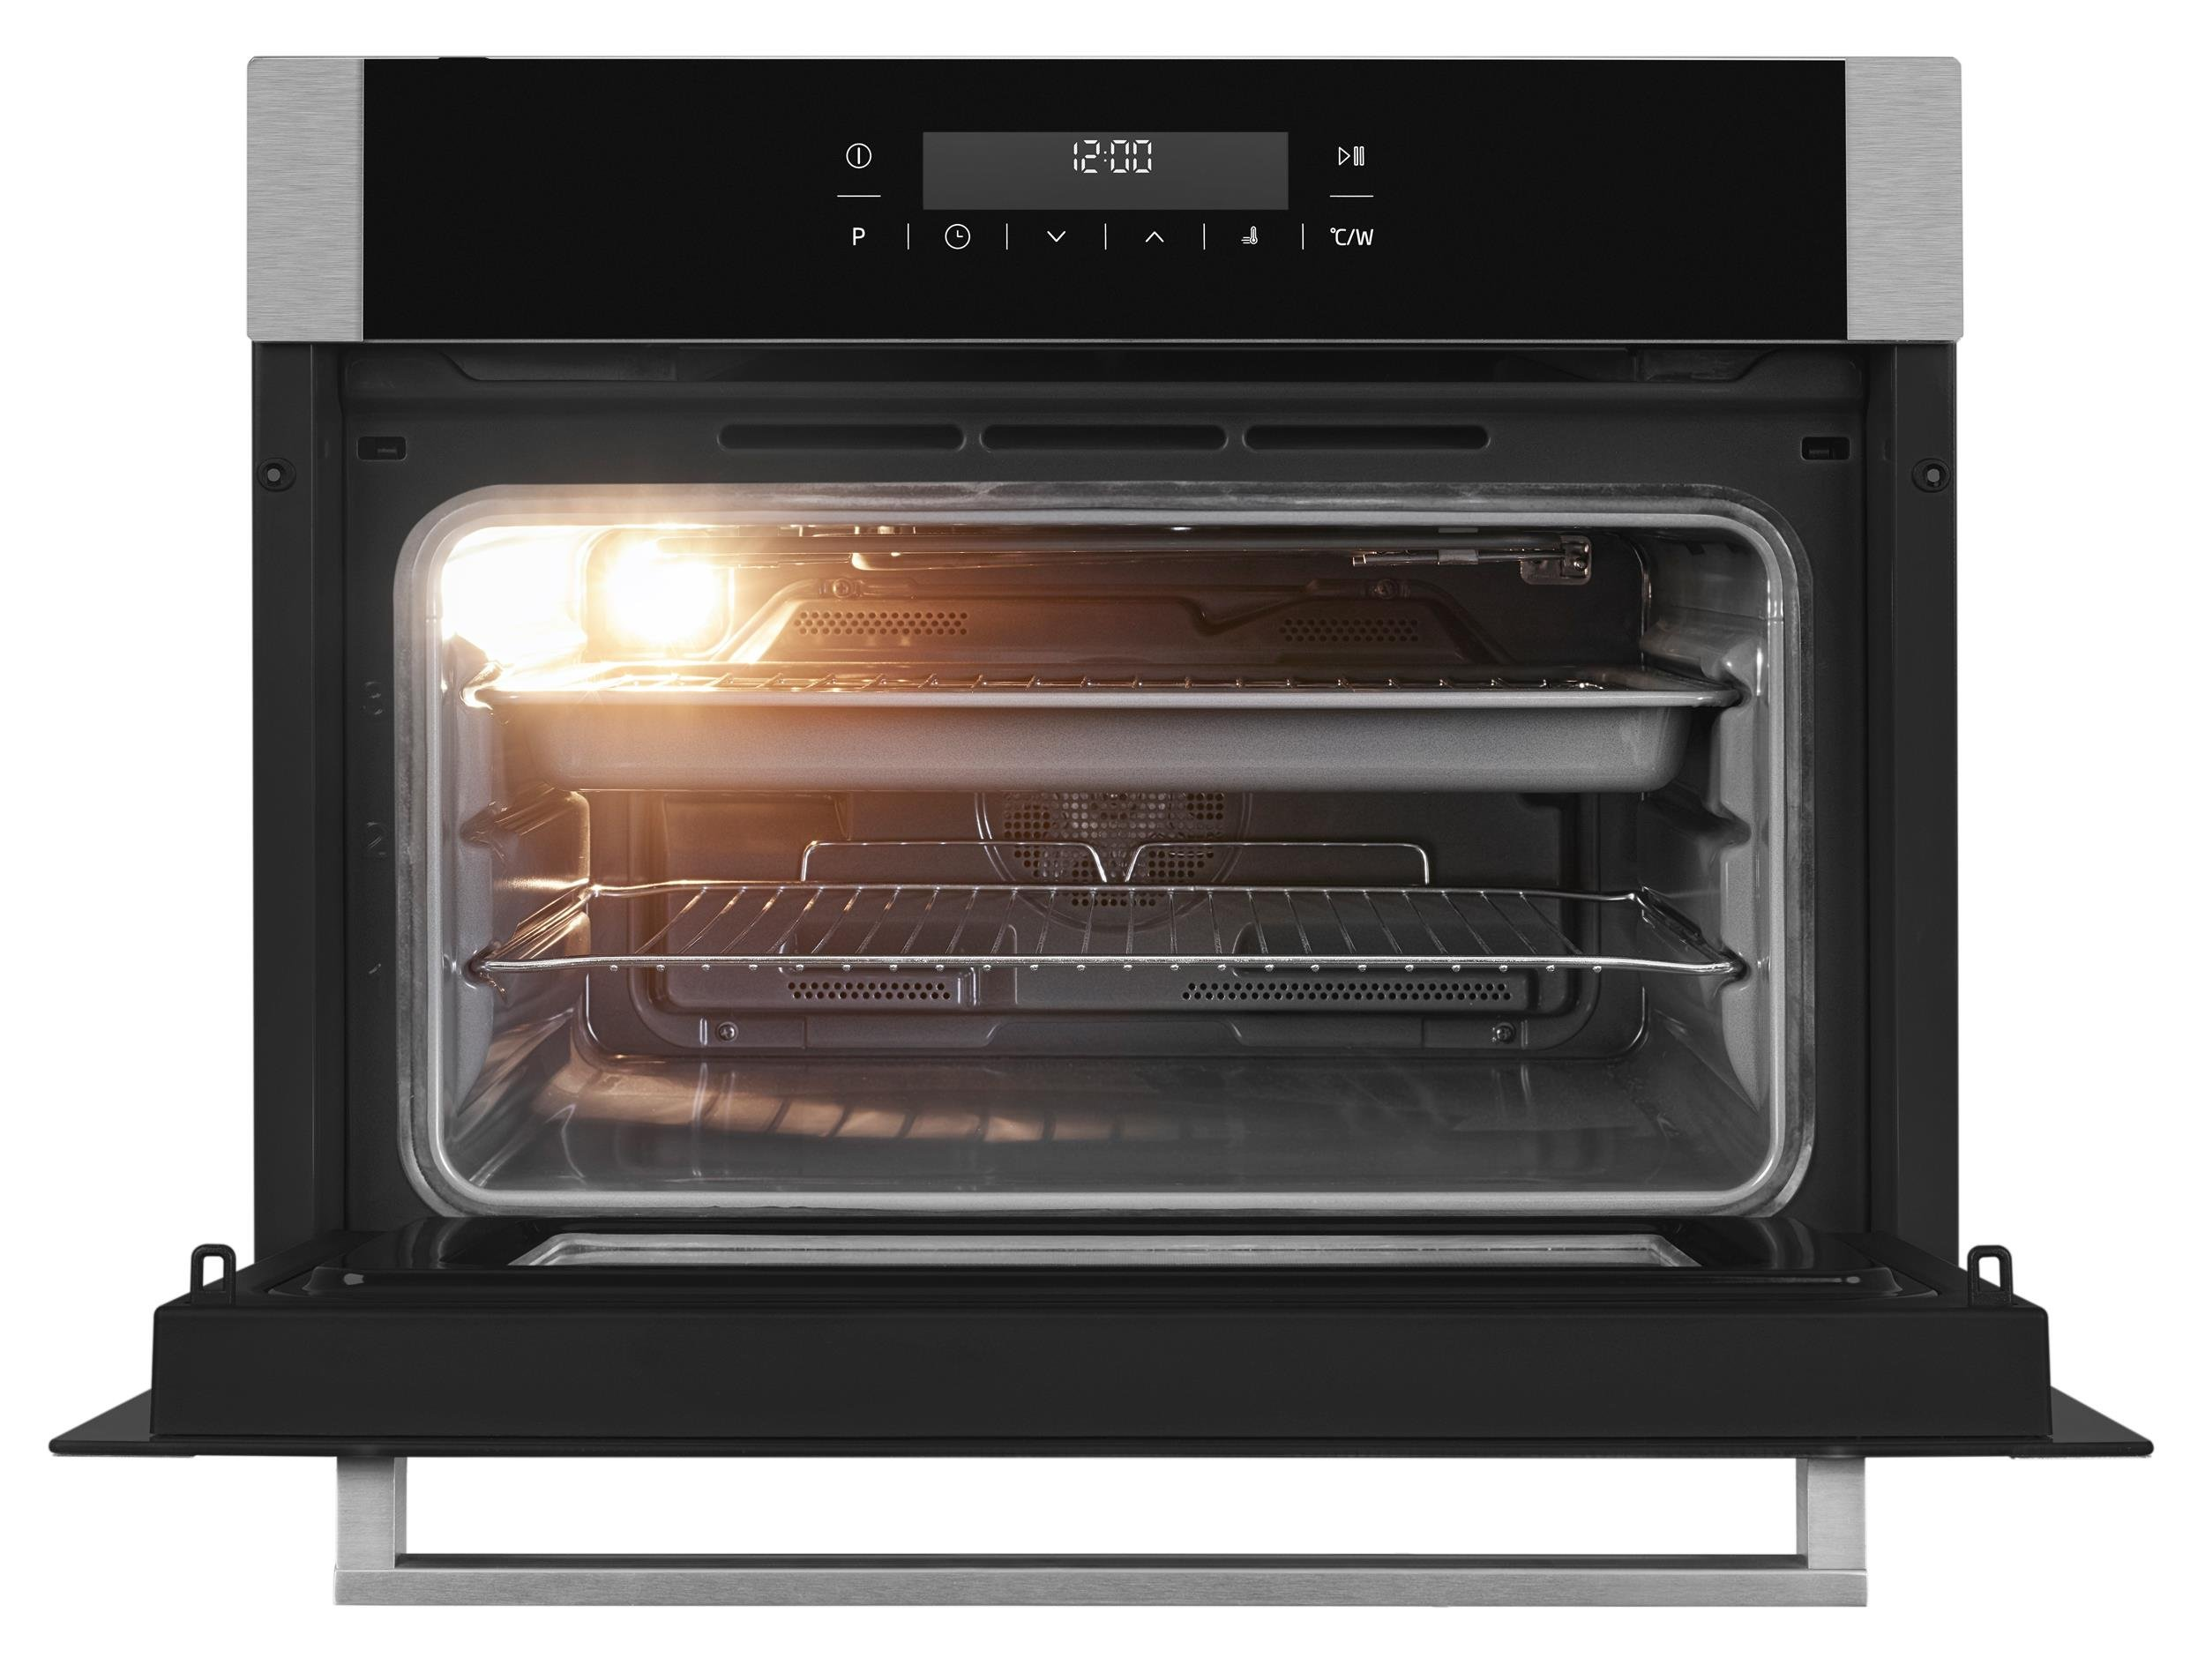 Okw9440 Compact Oven